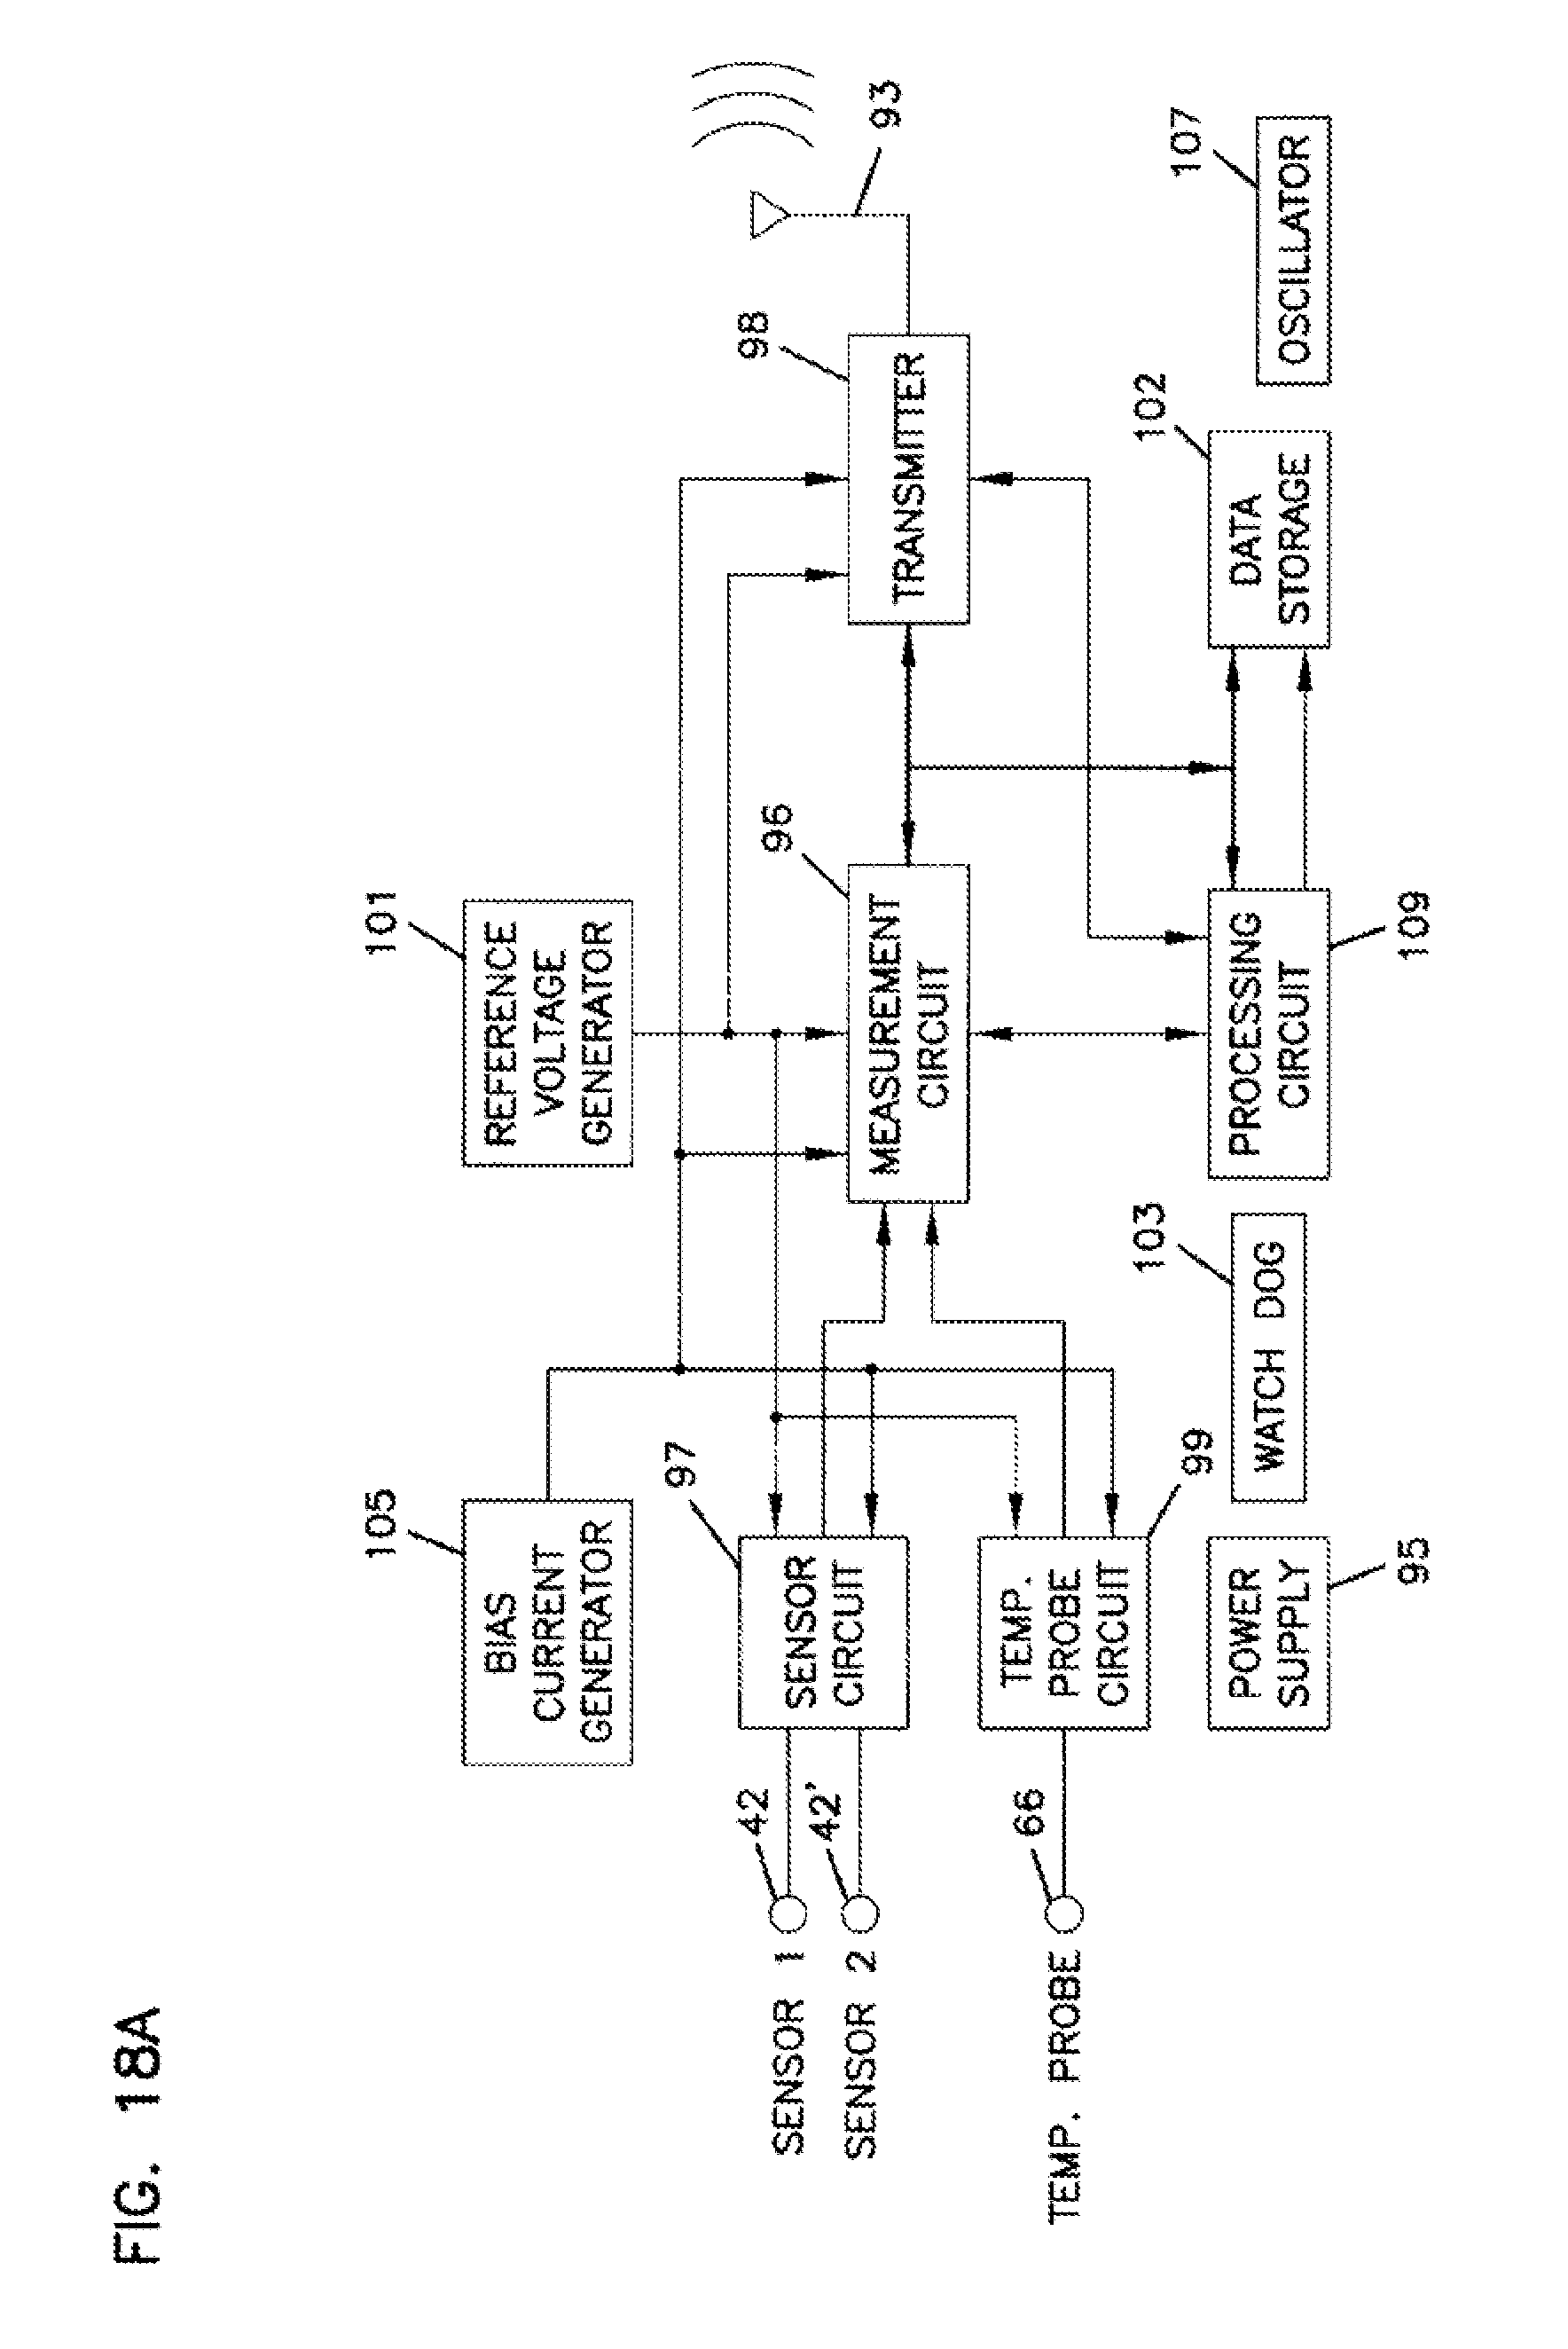 Us9014773b2 Analyte Monitoring Device And Methods Of Use Google Work Circuitry Miniaturisation A New Class Hearing Aids Has Patents